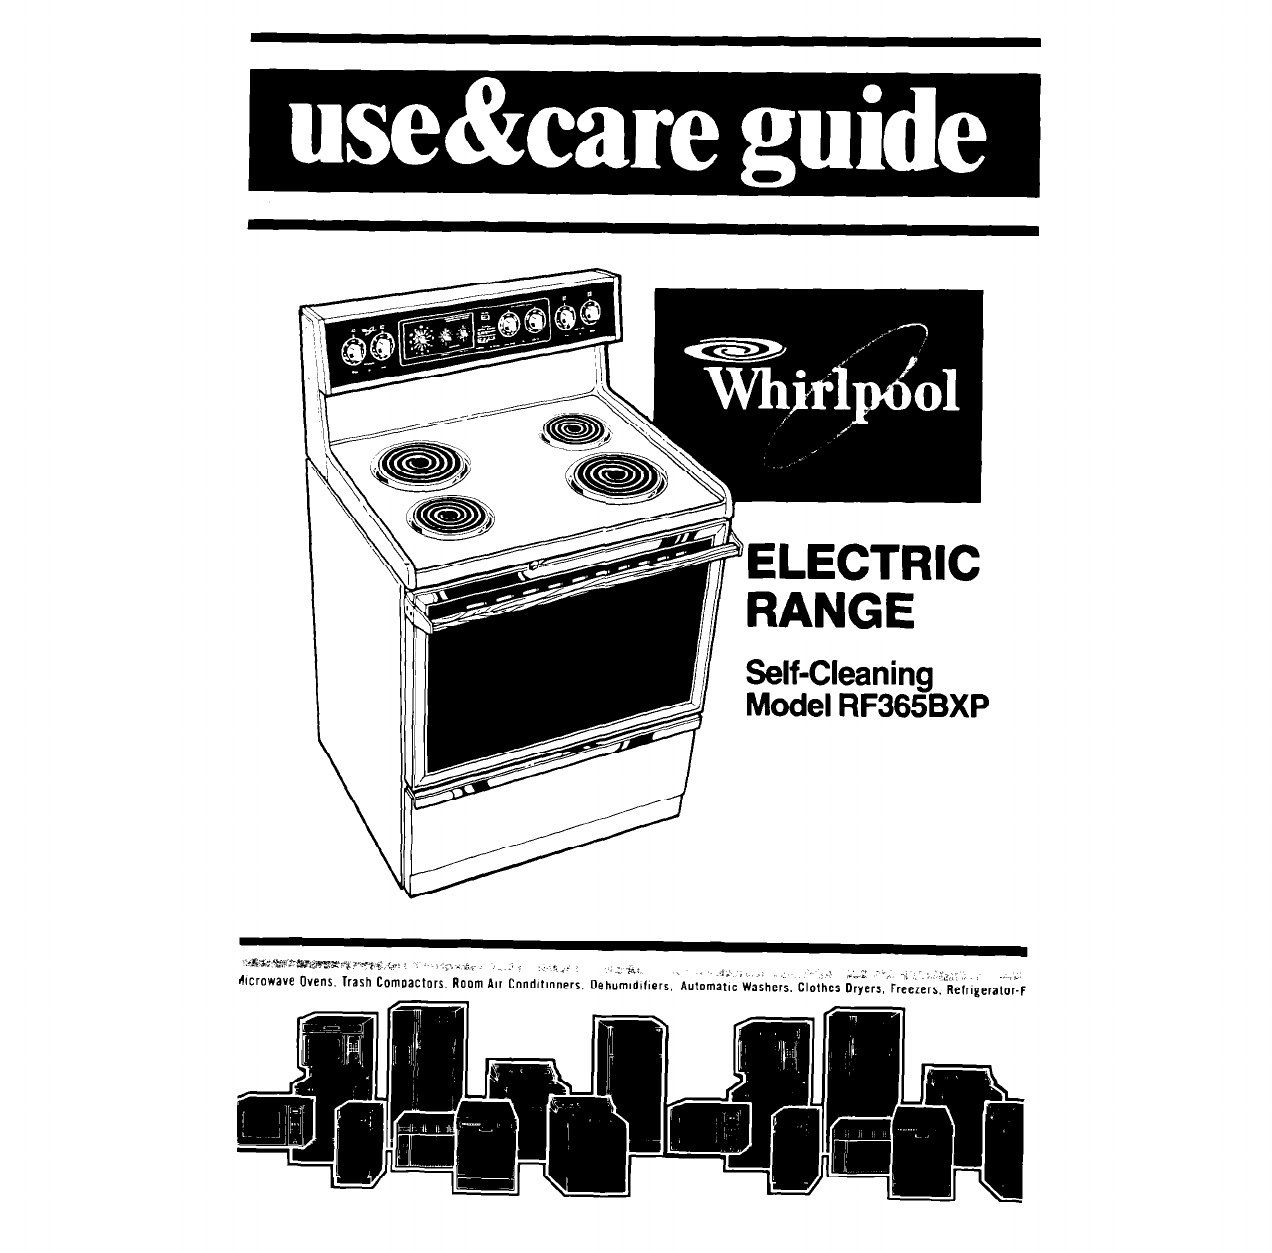 Whirlpool Range Rf365bxp User Guide